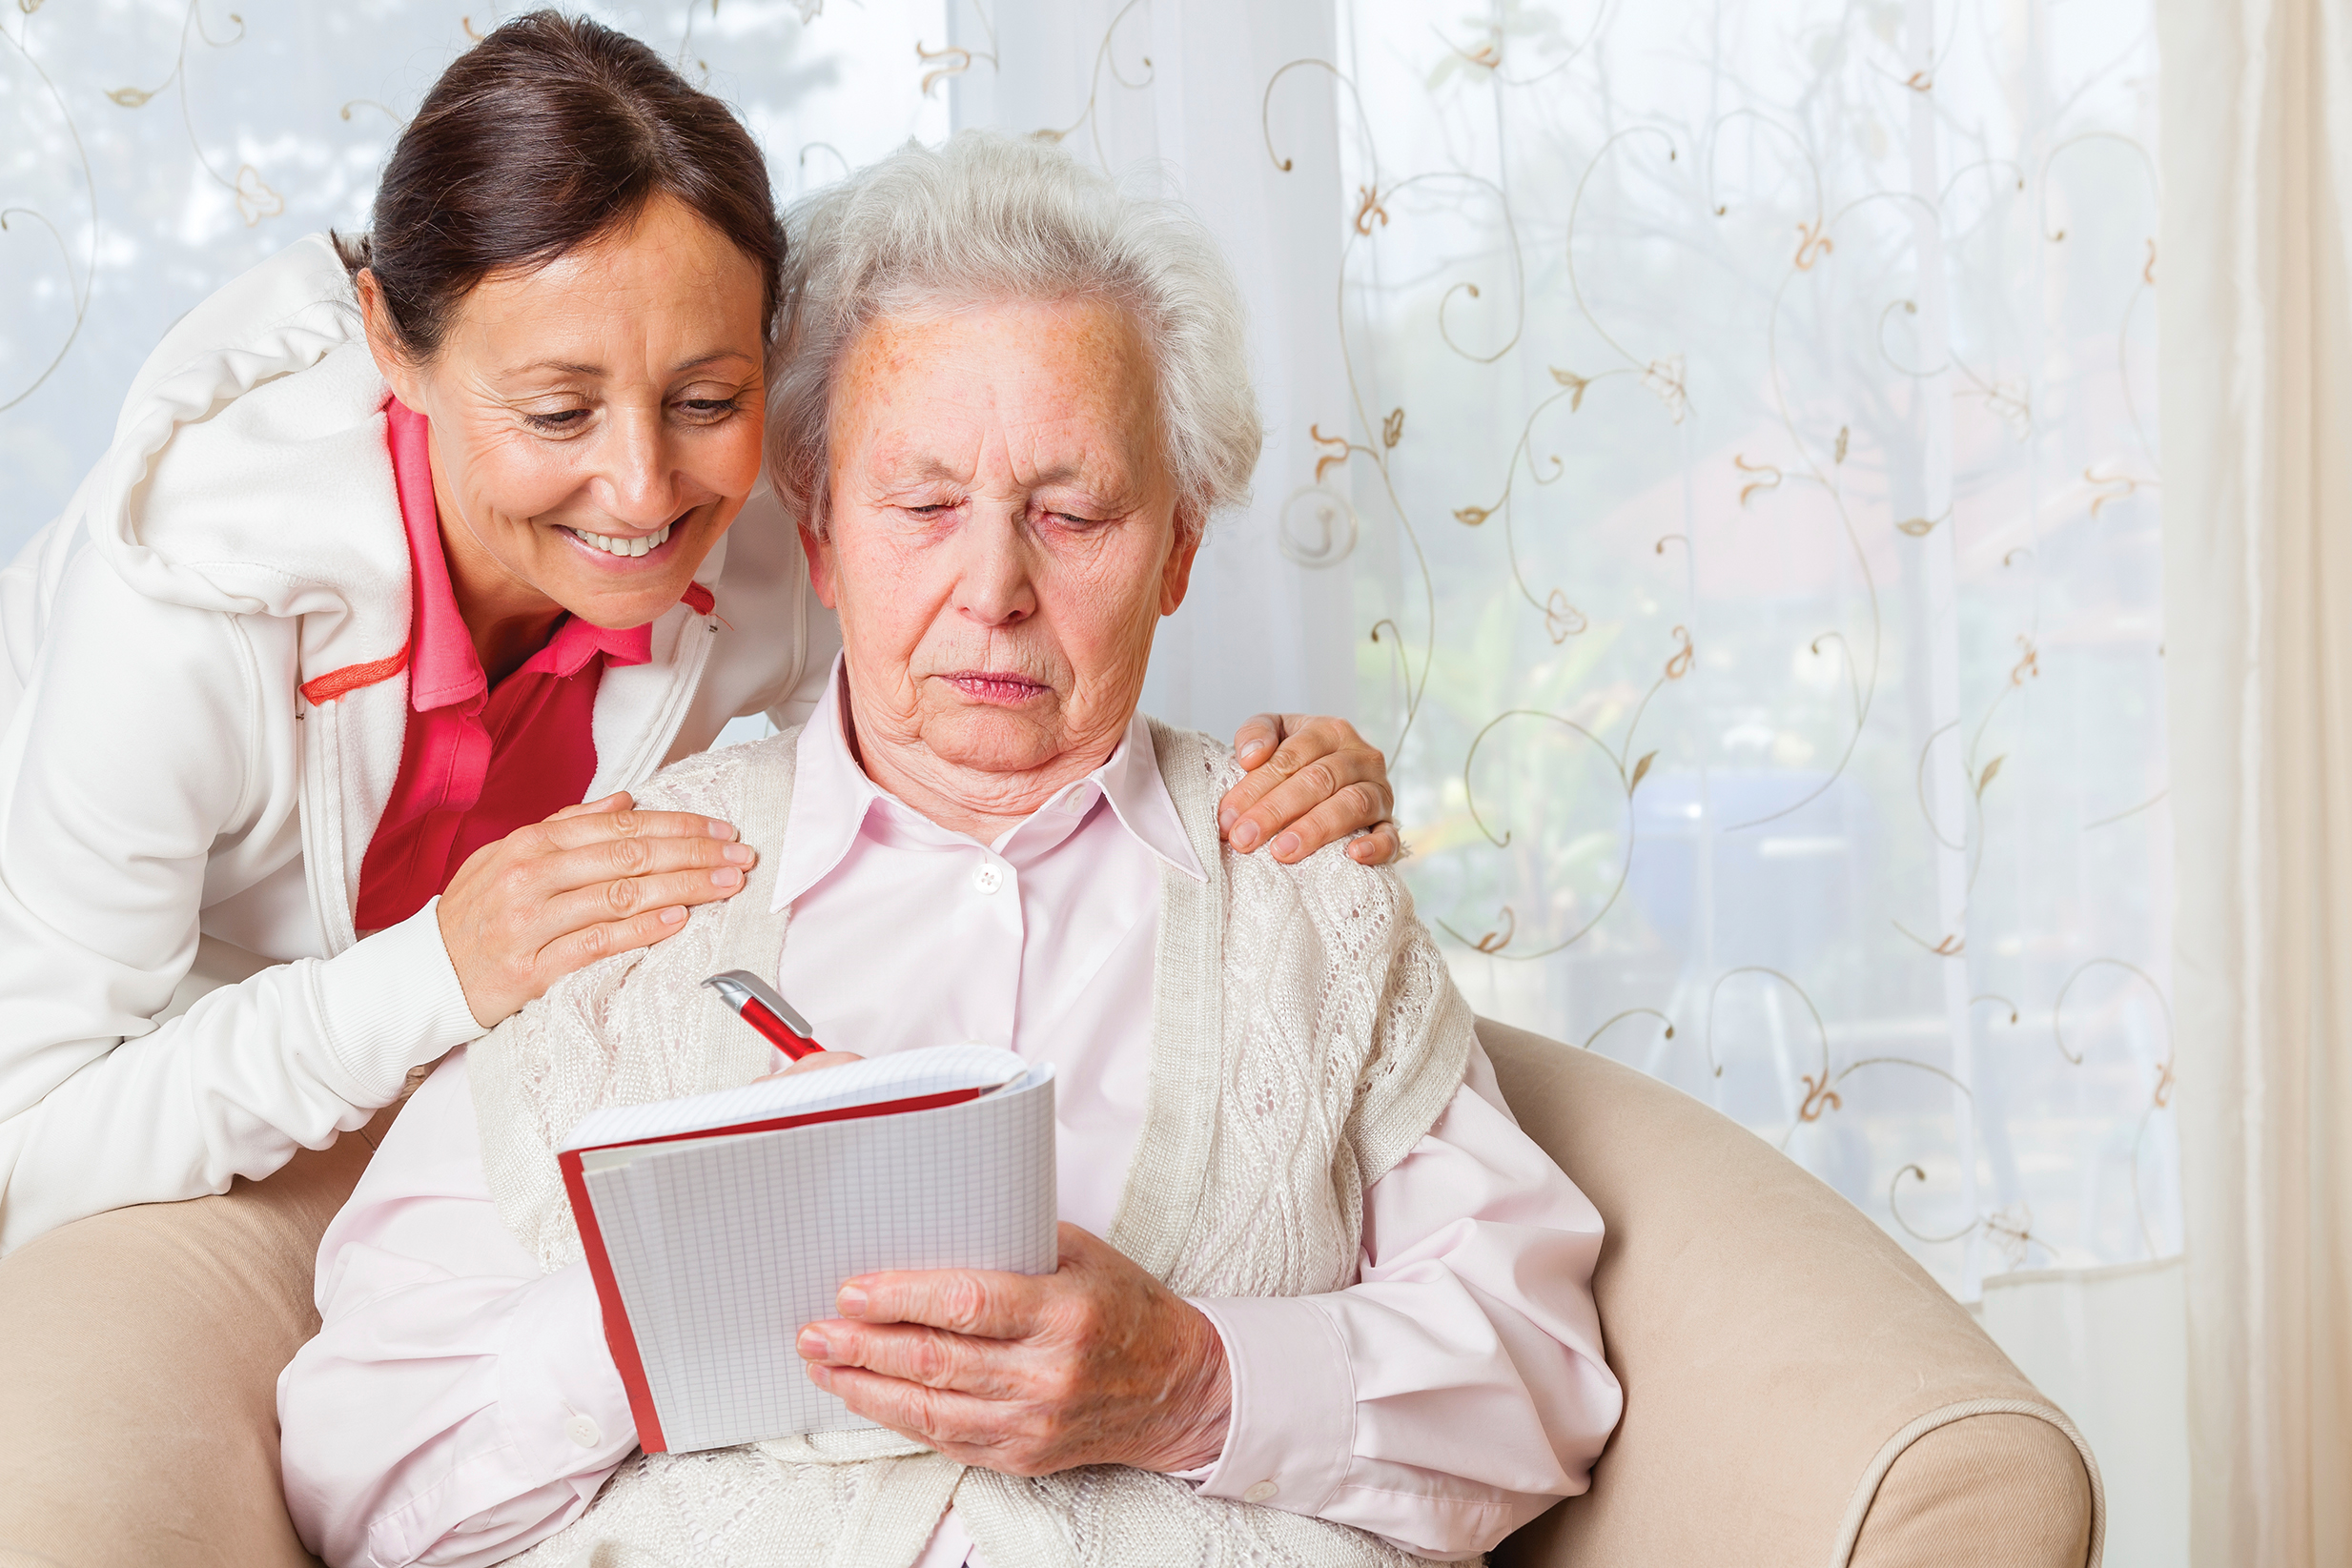 Young woman leaning over shoulder of elderly woman writing on a notepad.